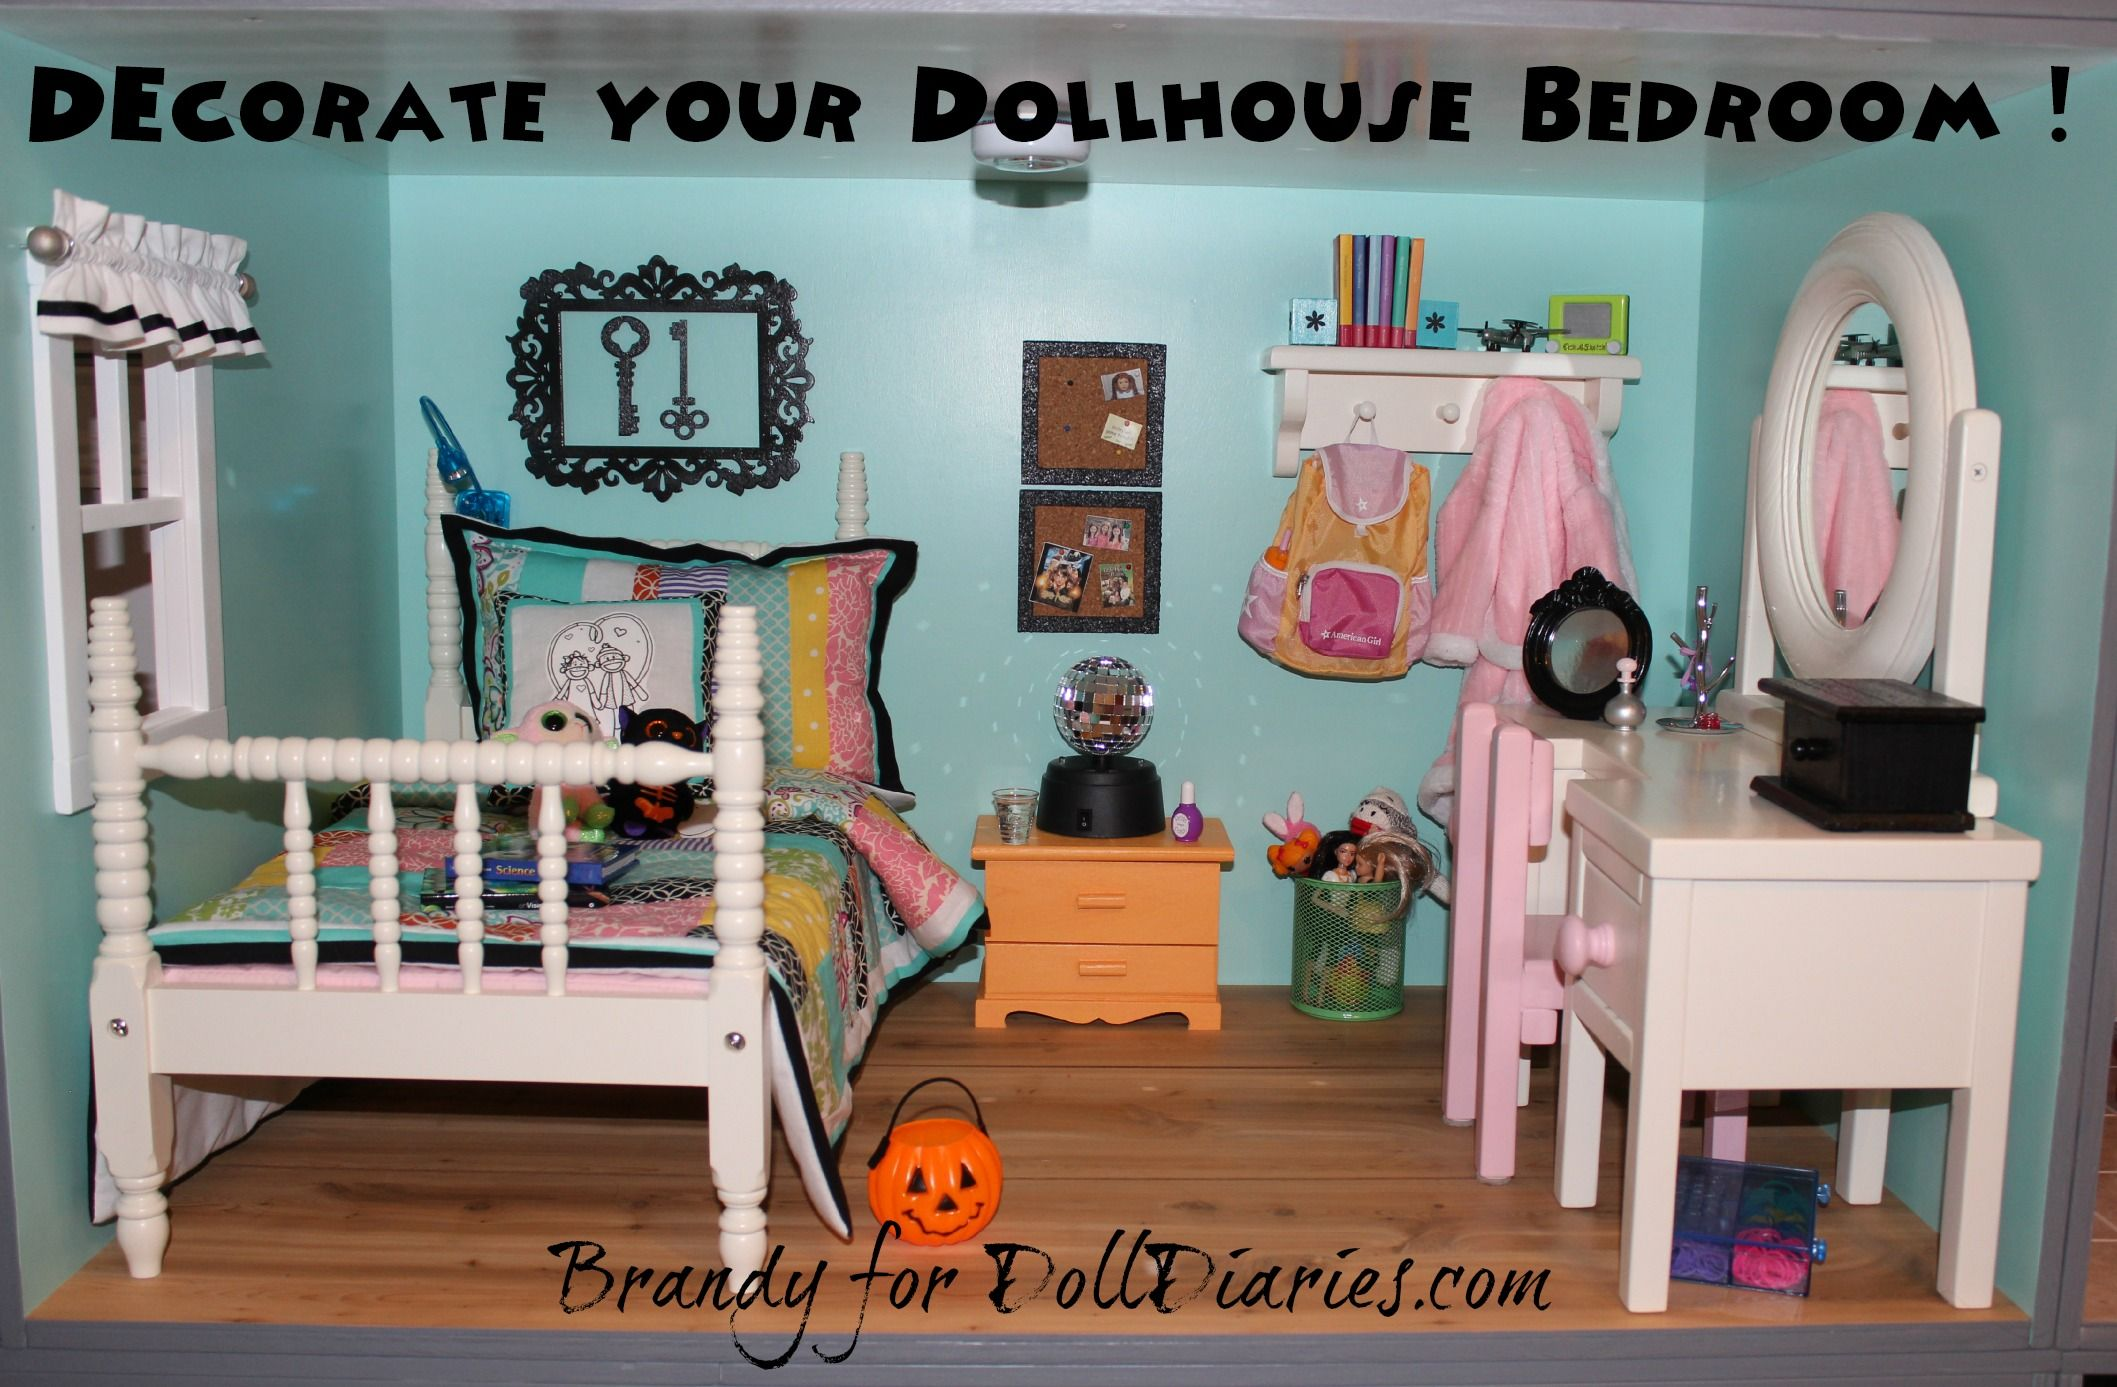 I Think My Daughters And I Enjoyed Decorating Their Dollhouse Bedroom The  Most Since These Rooms Were Decorated Very Similar To Their Own Real  Bedrooms.